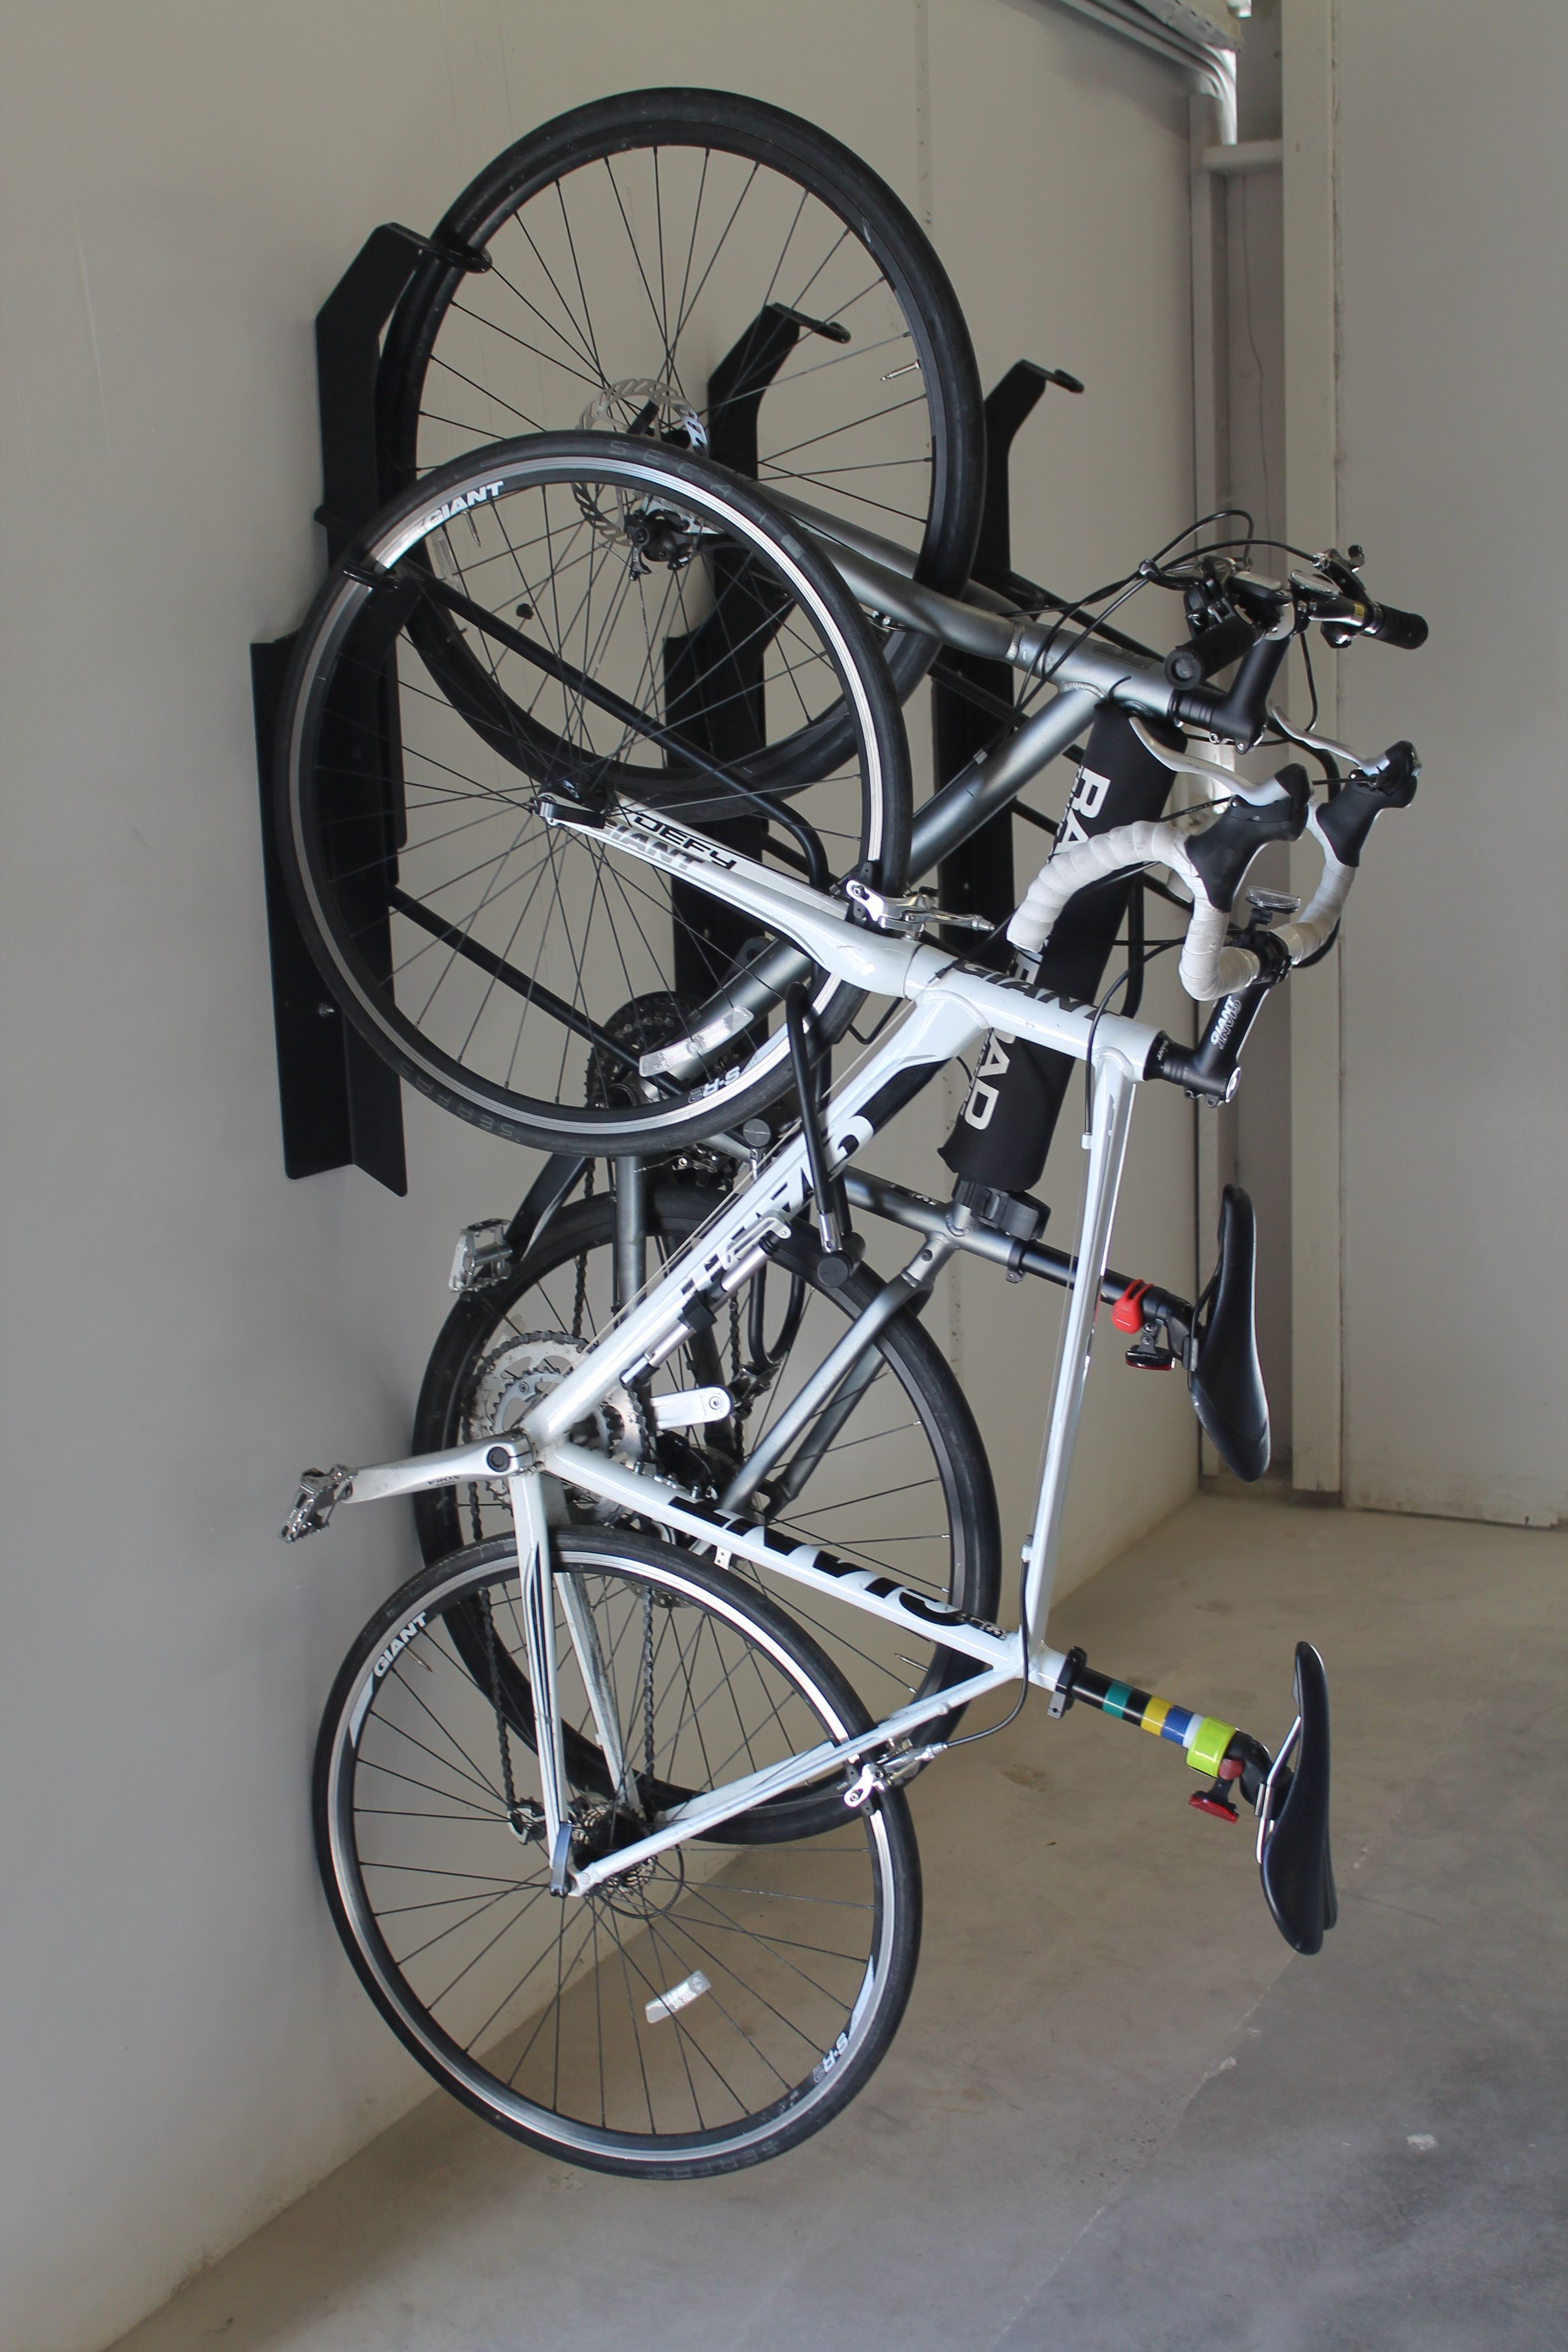 Parking Garage Bike Rack Park A Bike Vertical Offset Bike Rack 06 Commercial Vertical